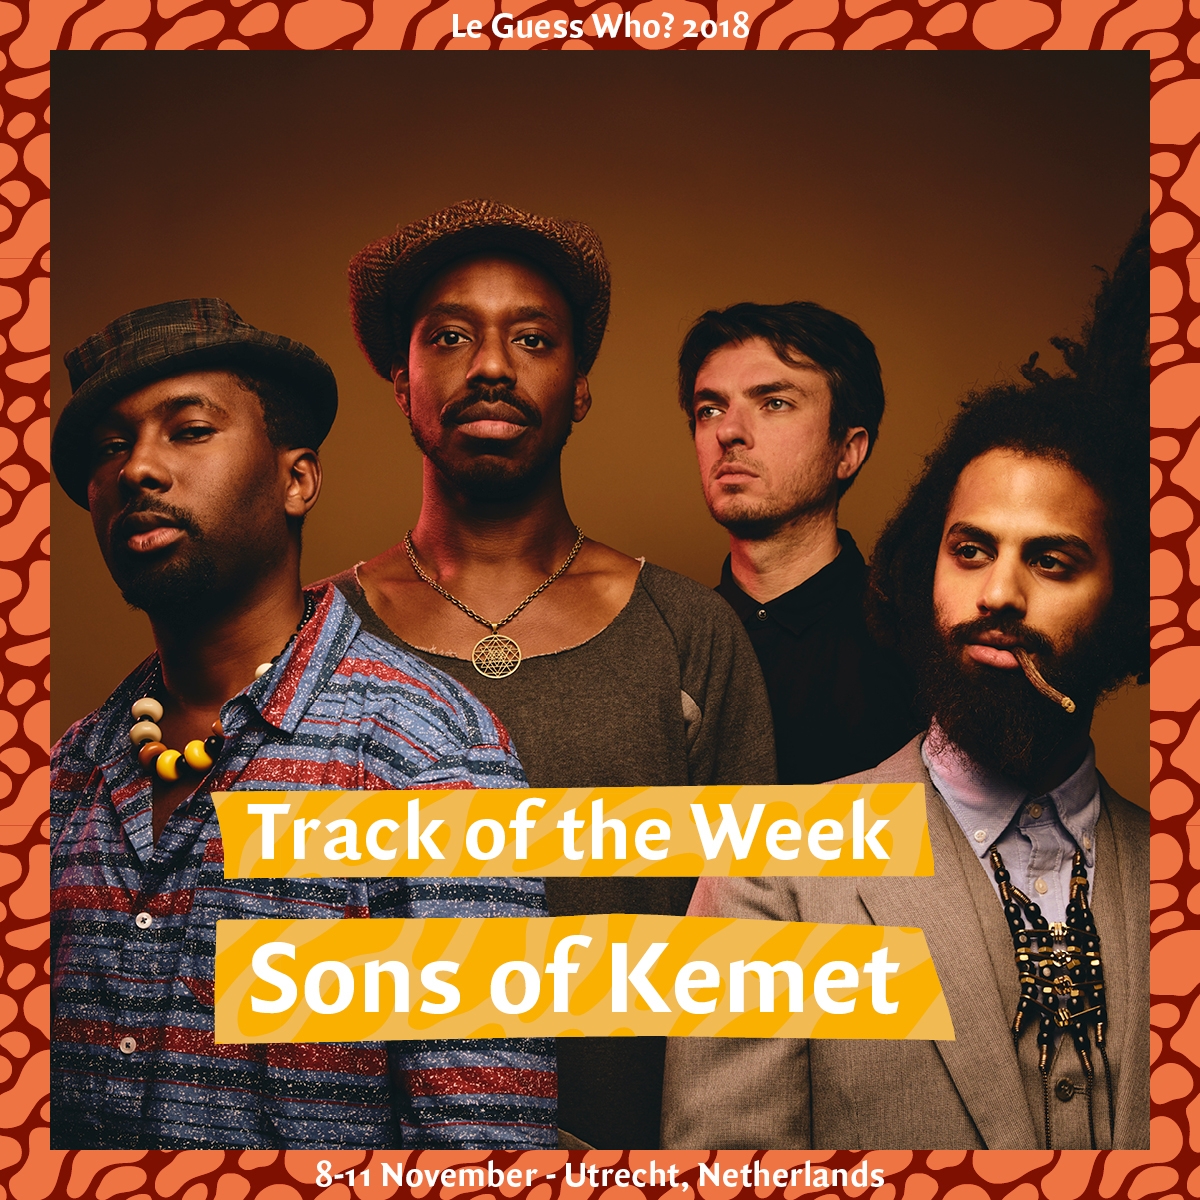 Track of the Week #6: Sons of Kemet - 'My Queen Is Harriet Tubman'